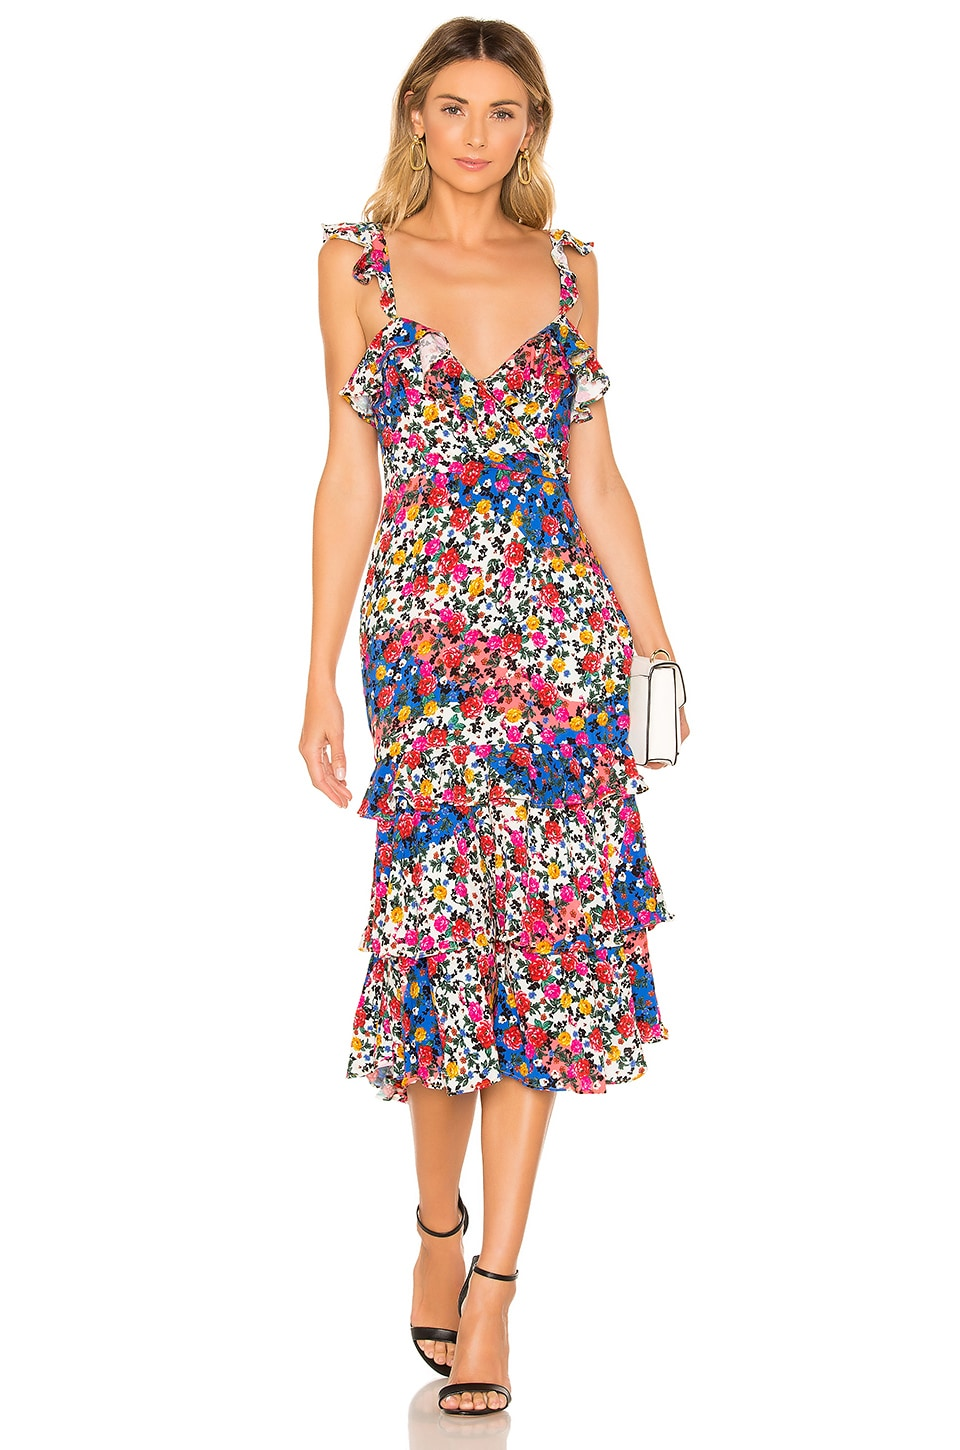 MAJORELLE Nolita Midi Dress in Patchwork Multi